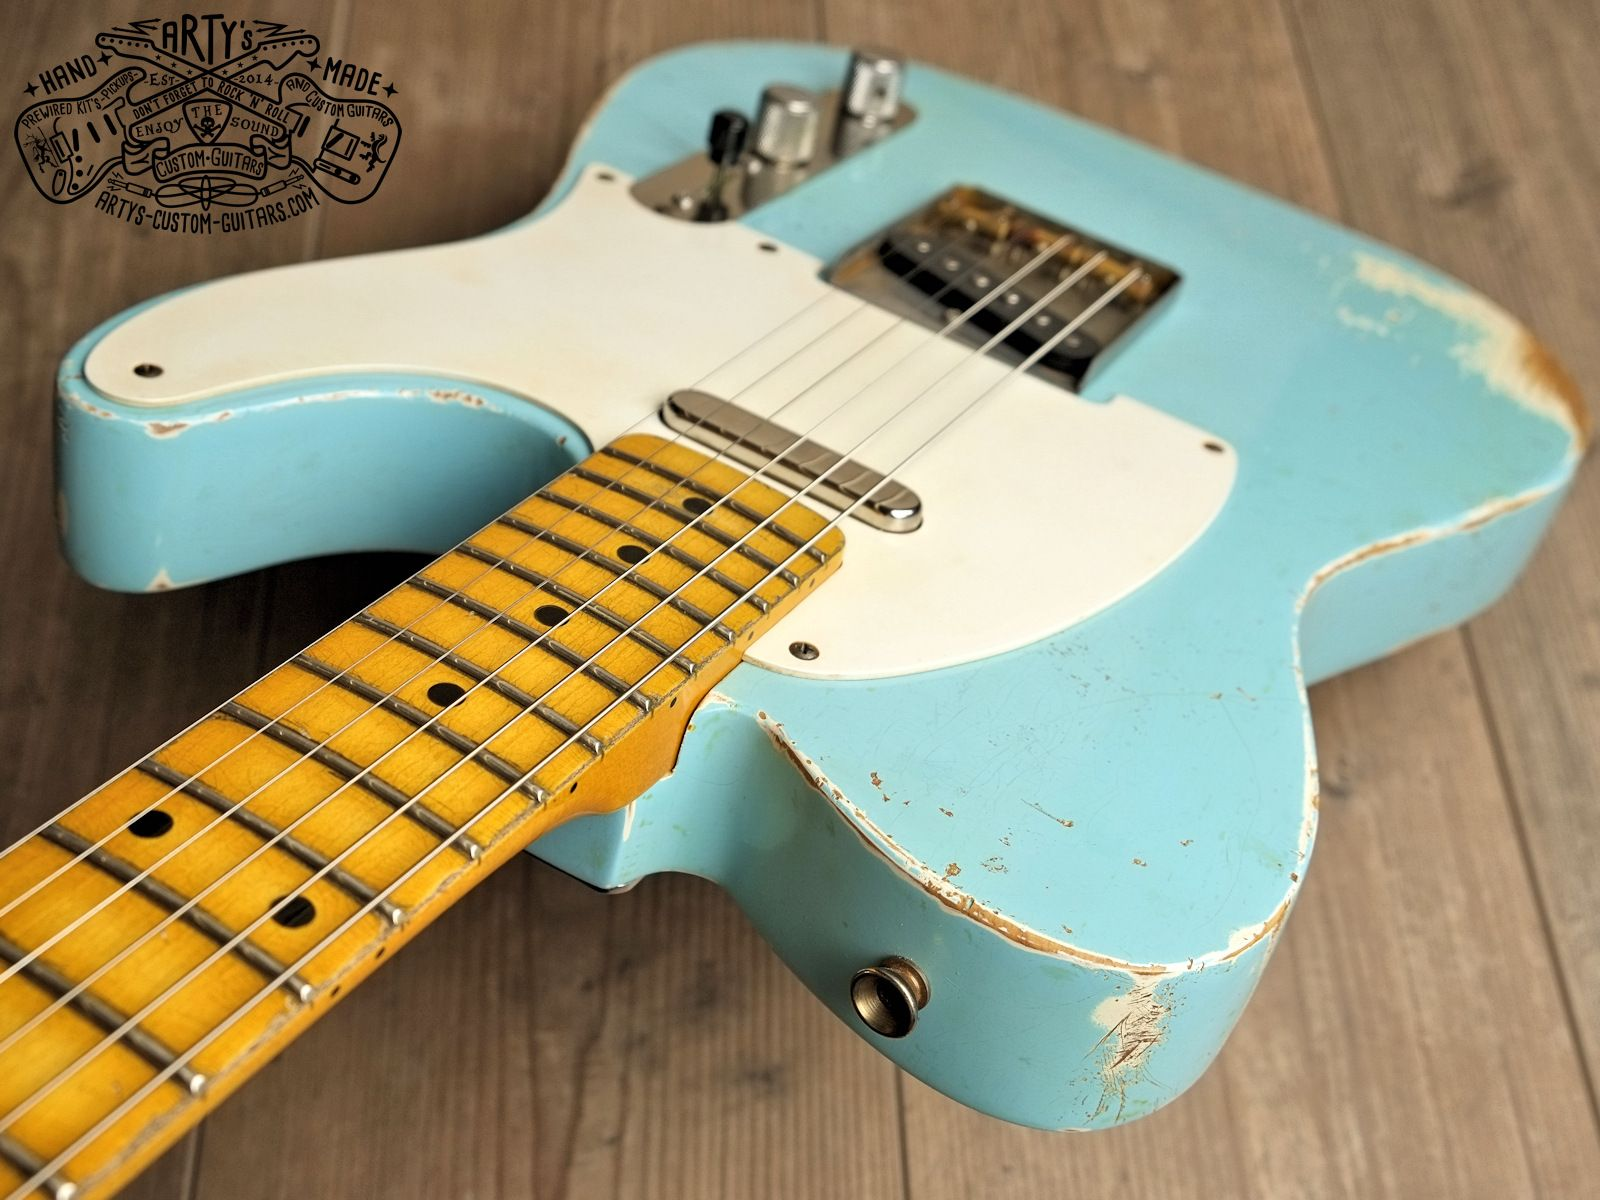 hight resolution of sonic blue relic roadworn telecaster warmoth maple neck fender swamp ash body aged nitro finish arty s custom guitars